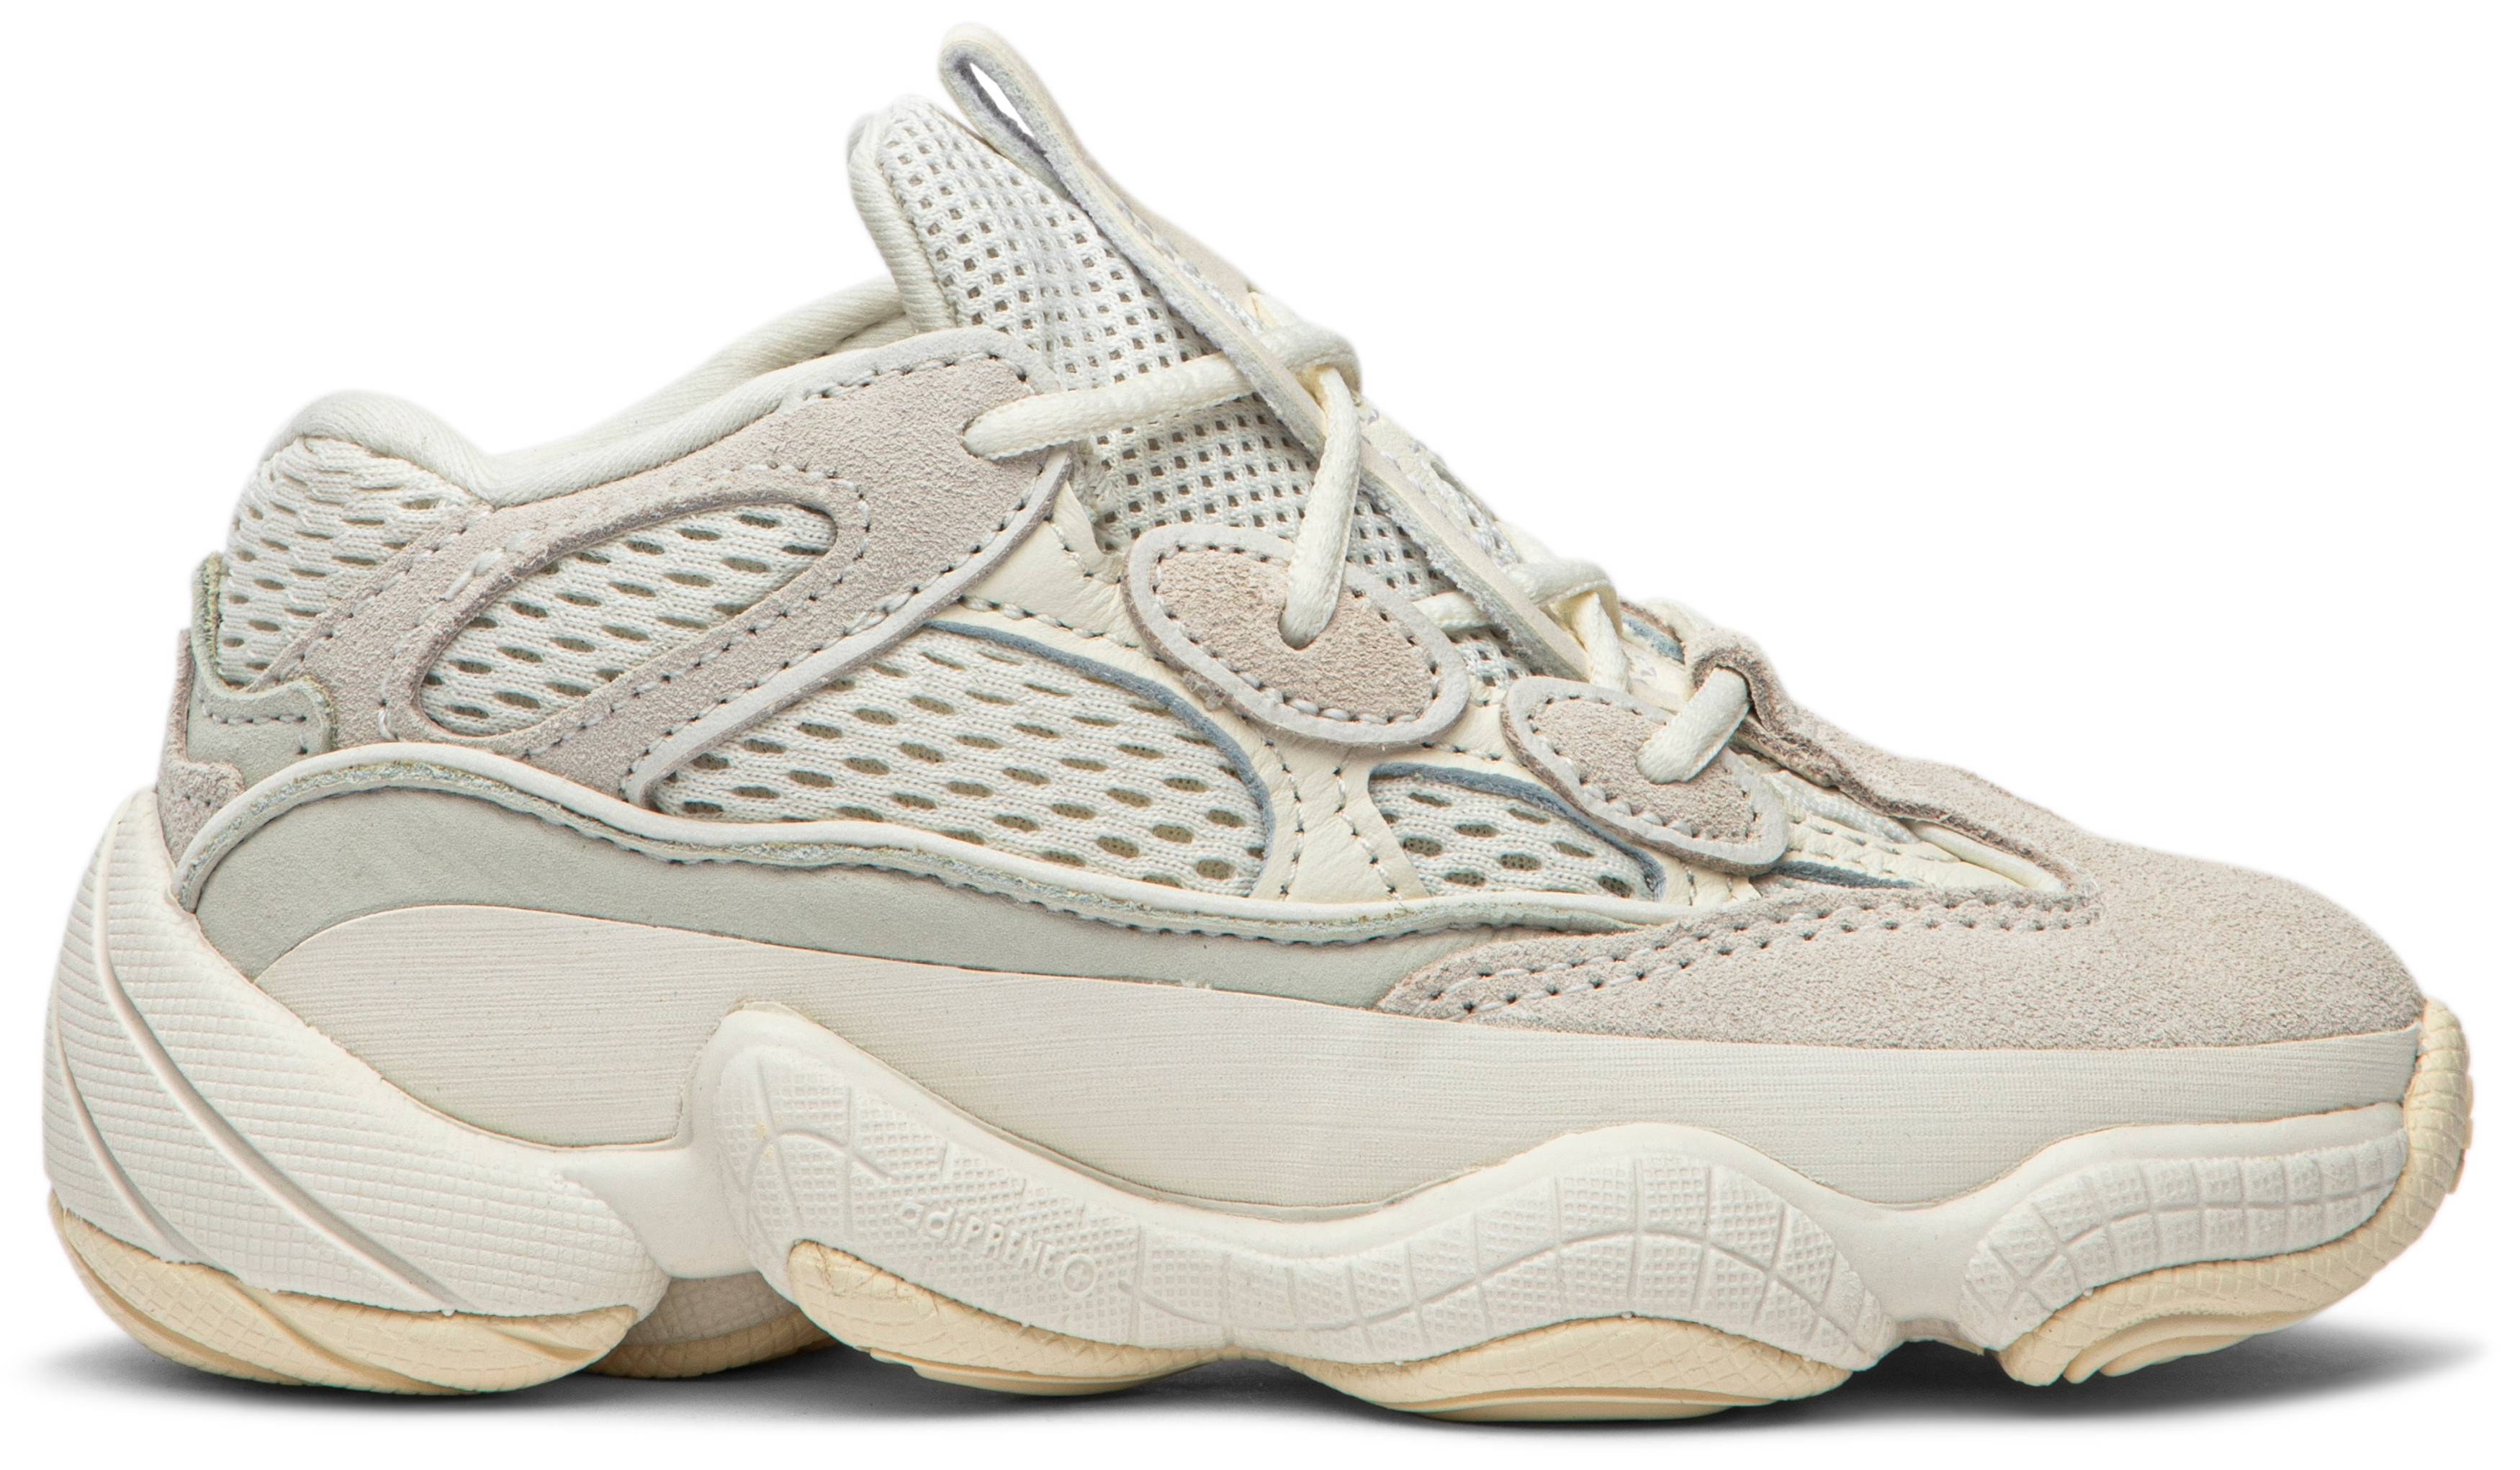 Yeezy 500 Infant 'Bone White'